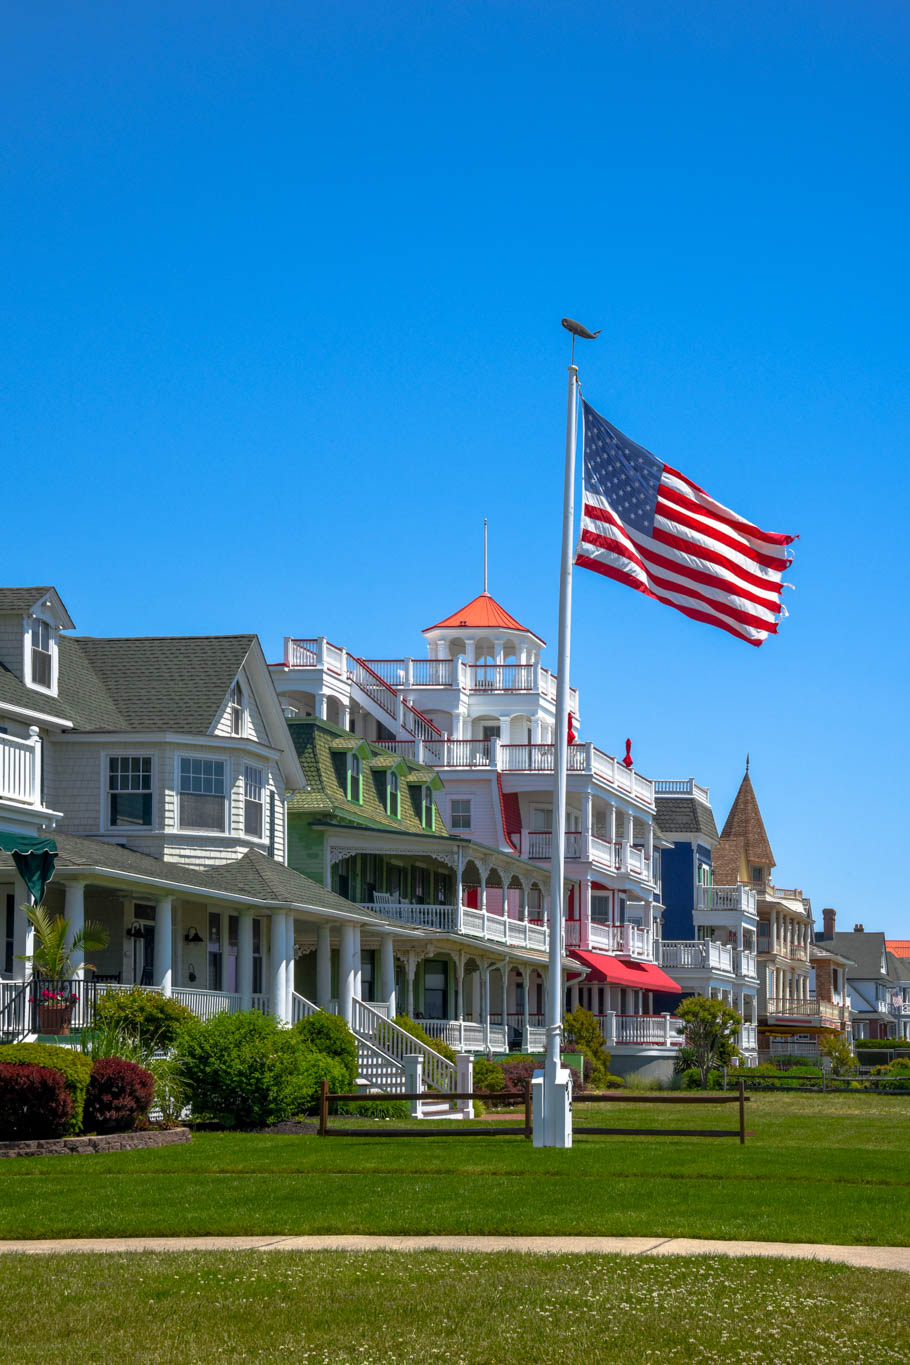 Looking along the homes of Beach Ave. and watching the wind whip the flag.